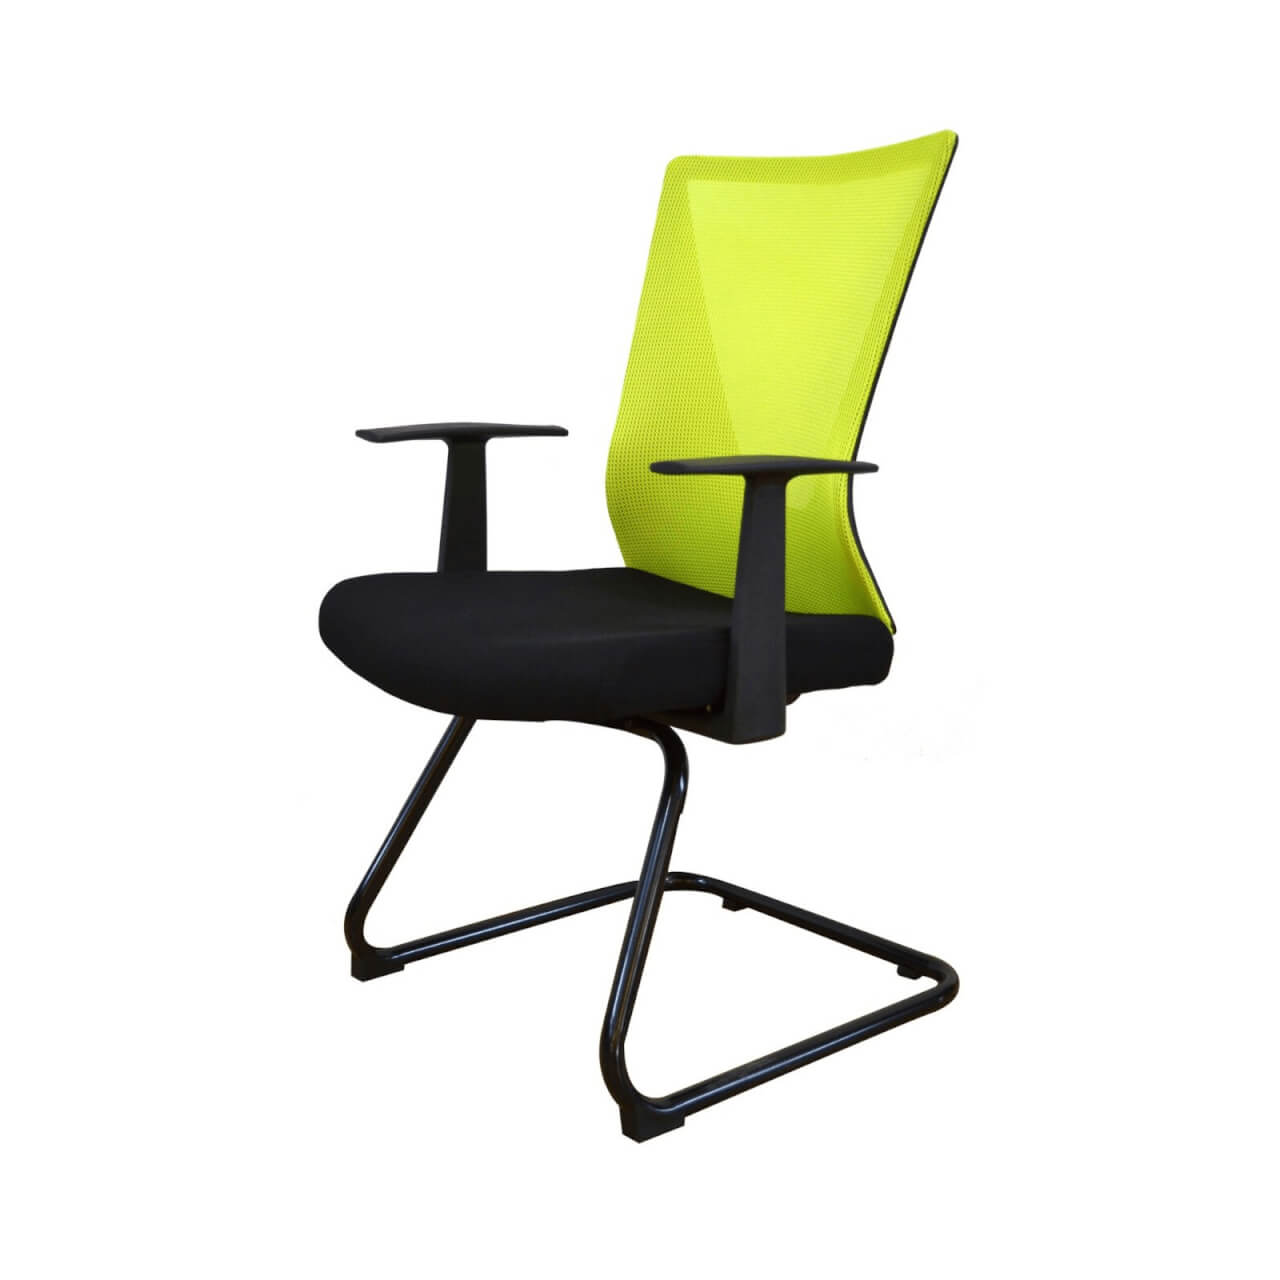 cantilever-chair-yellow